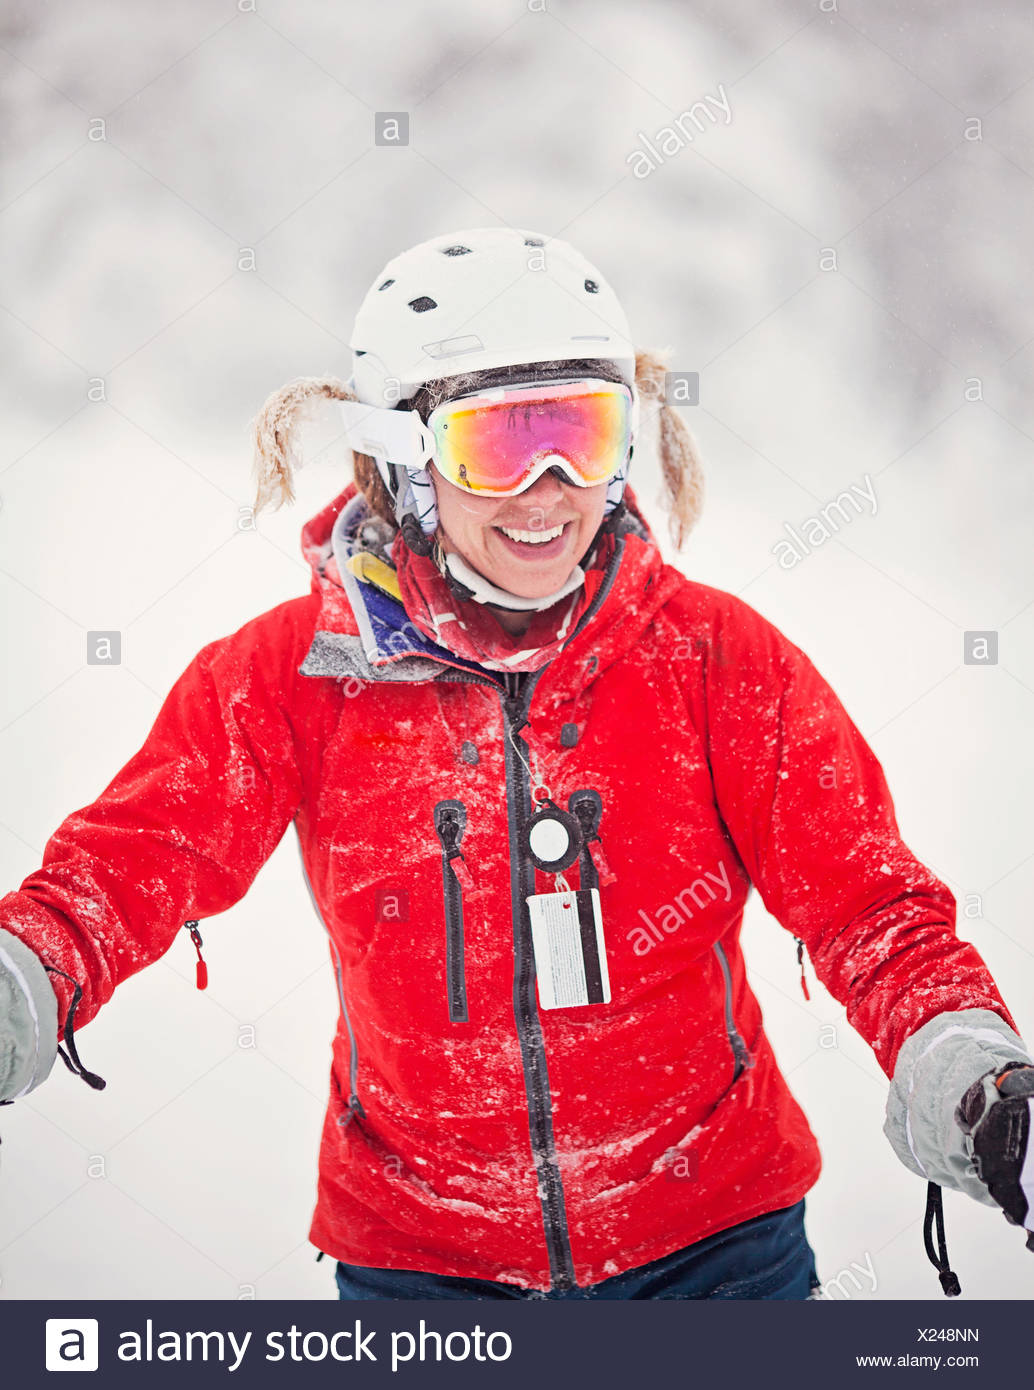 A female skier with her braids tucked into her goggle straps. - Stock Image